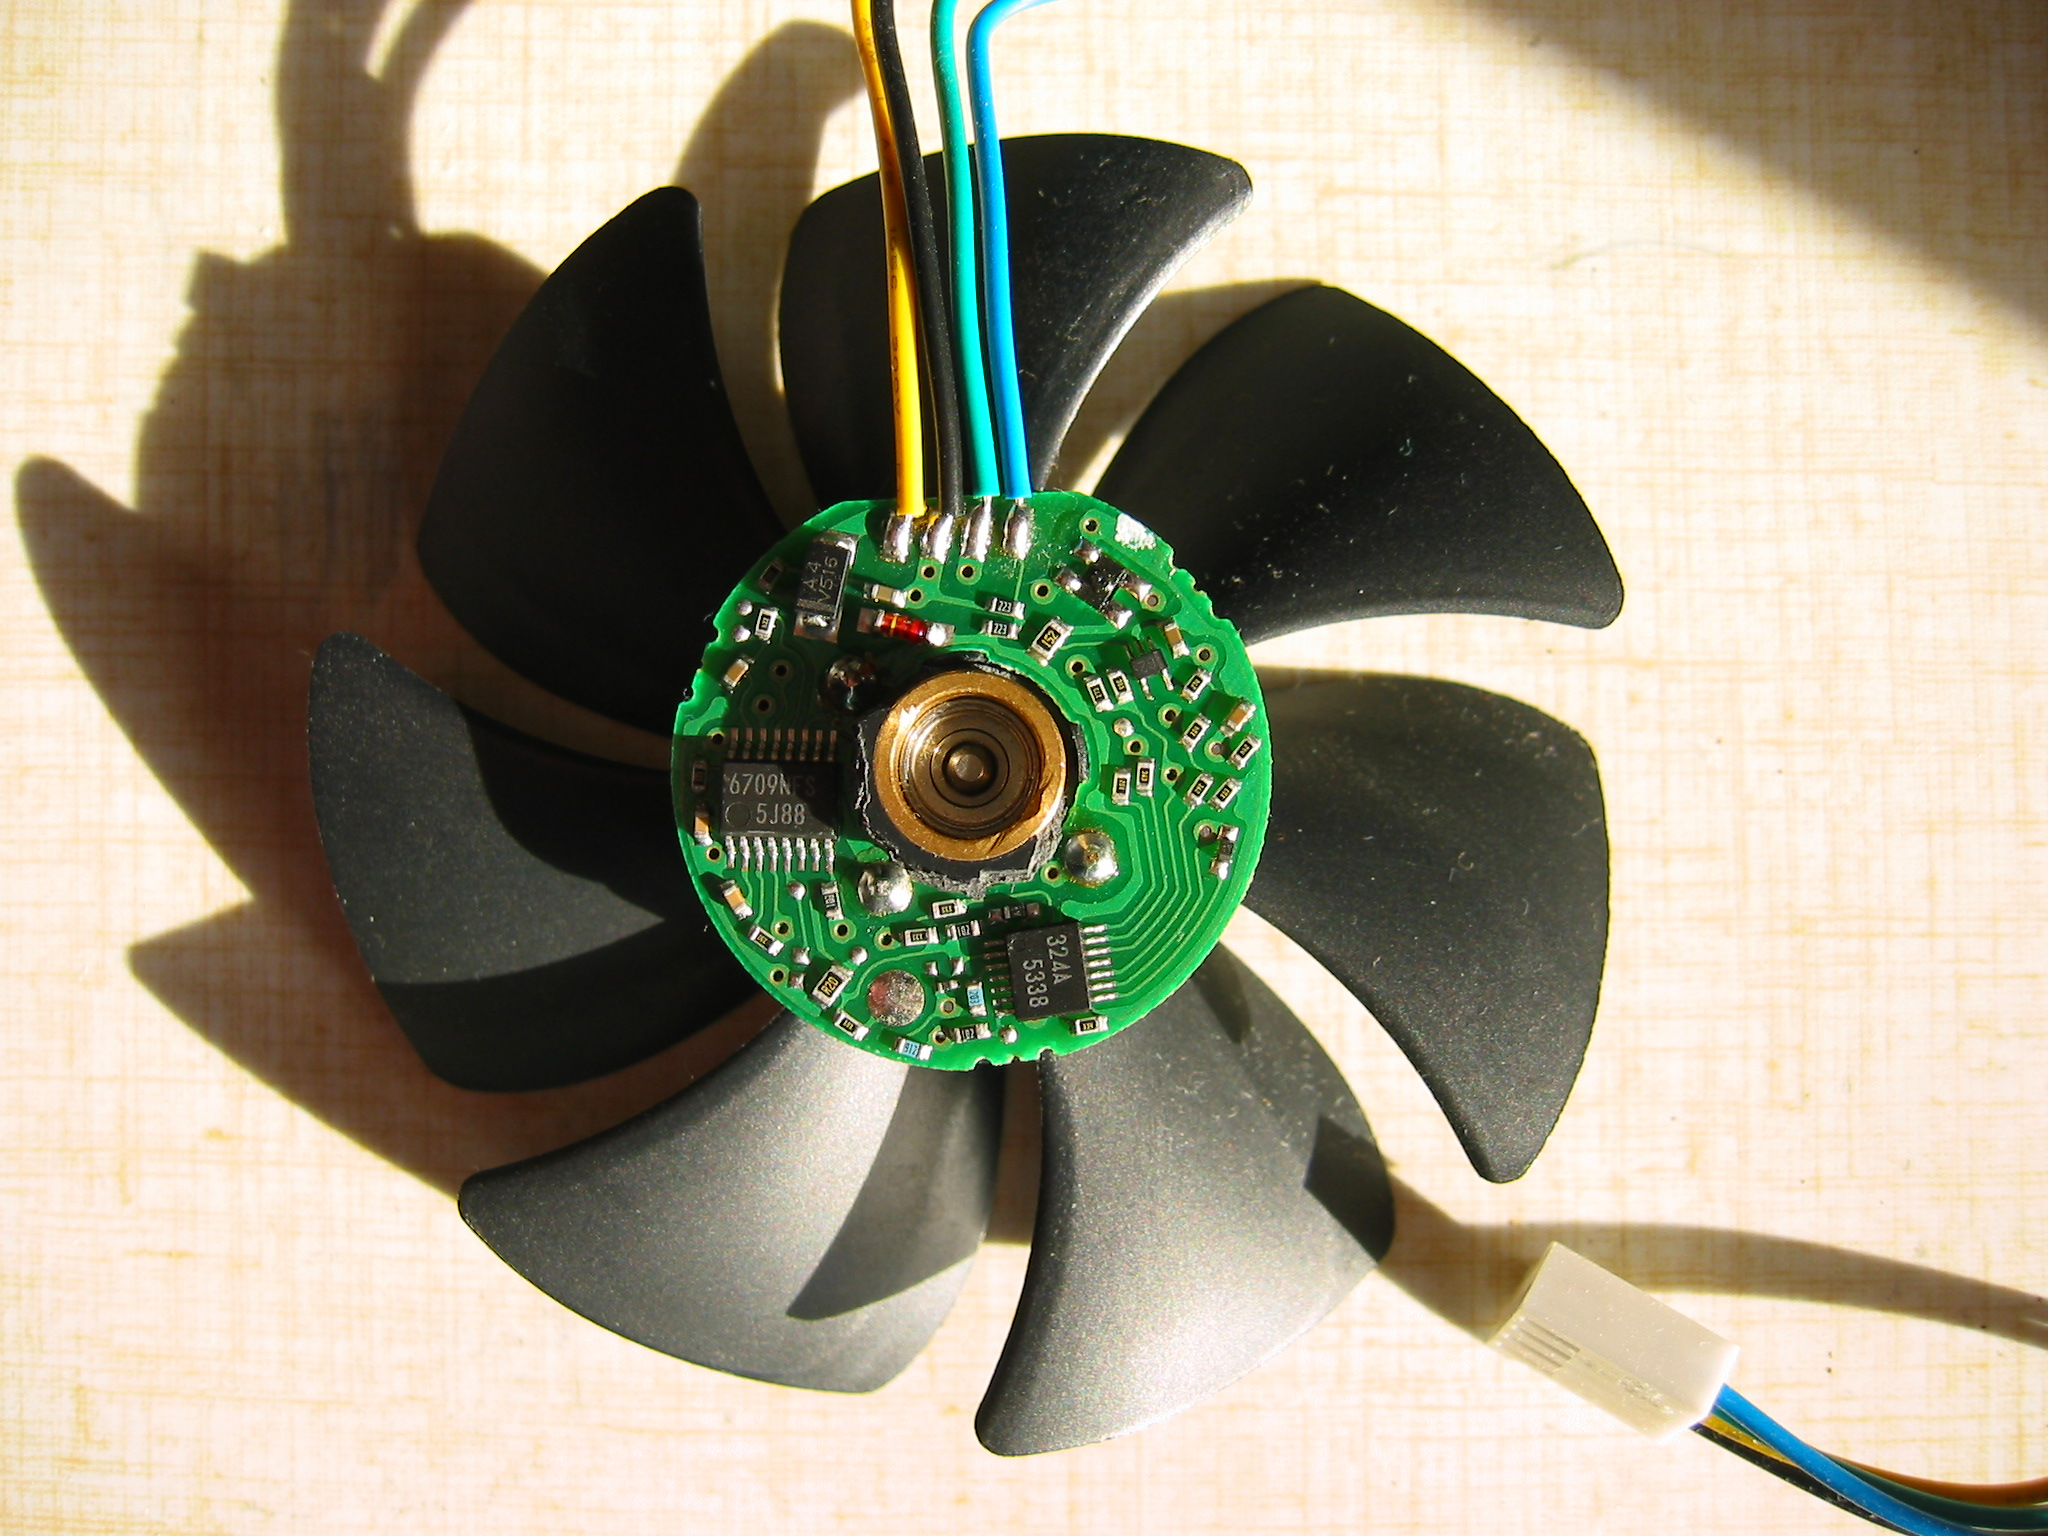 4-Wire fans on 4 pin fan relay, 4 pin plug diagram, 4 pin fan connector solder, 4 pin fan adapter, 4 pin fan header pinout,